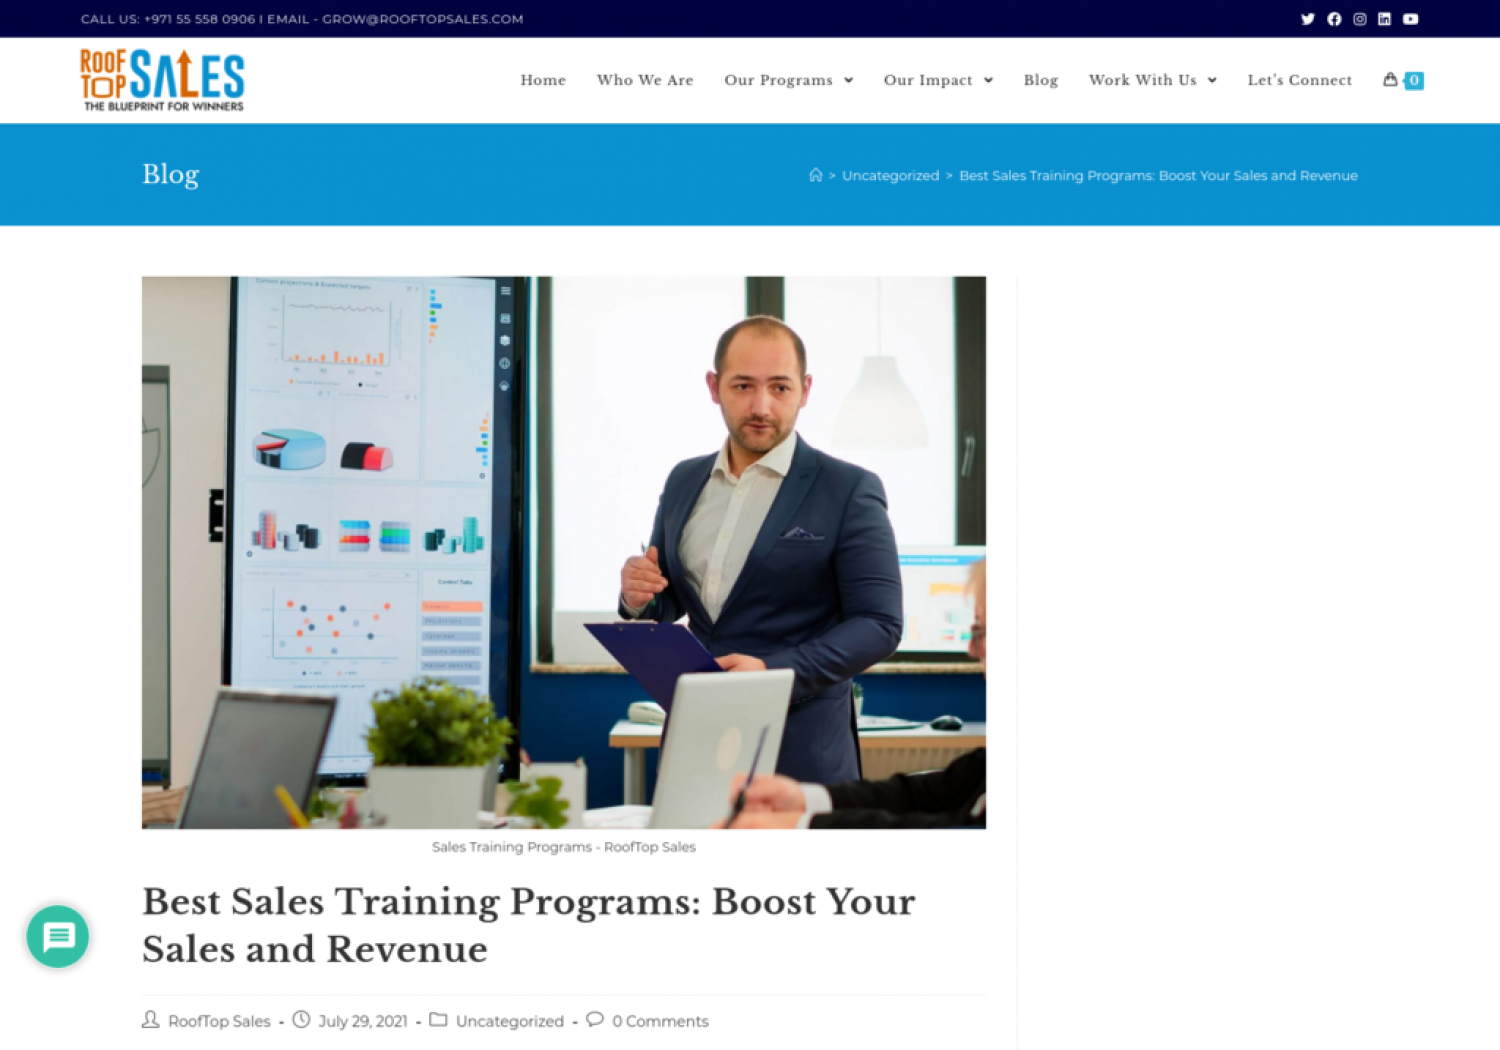 Best Sales Training Programs: Boost Your Sales and Revenue Infographic